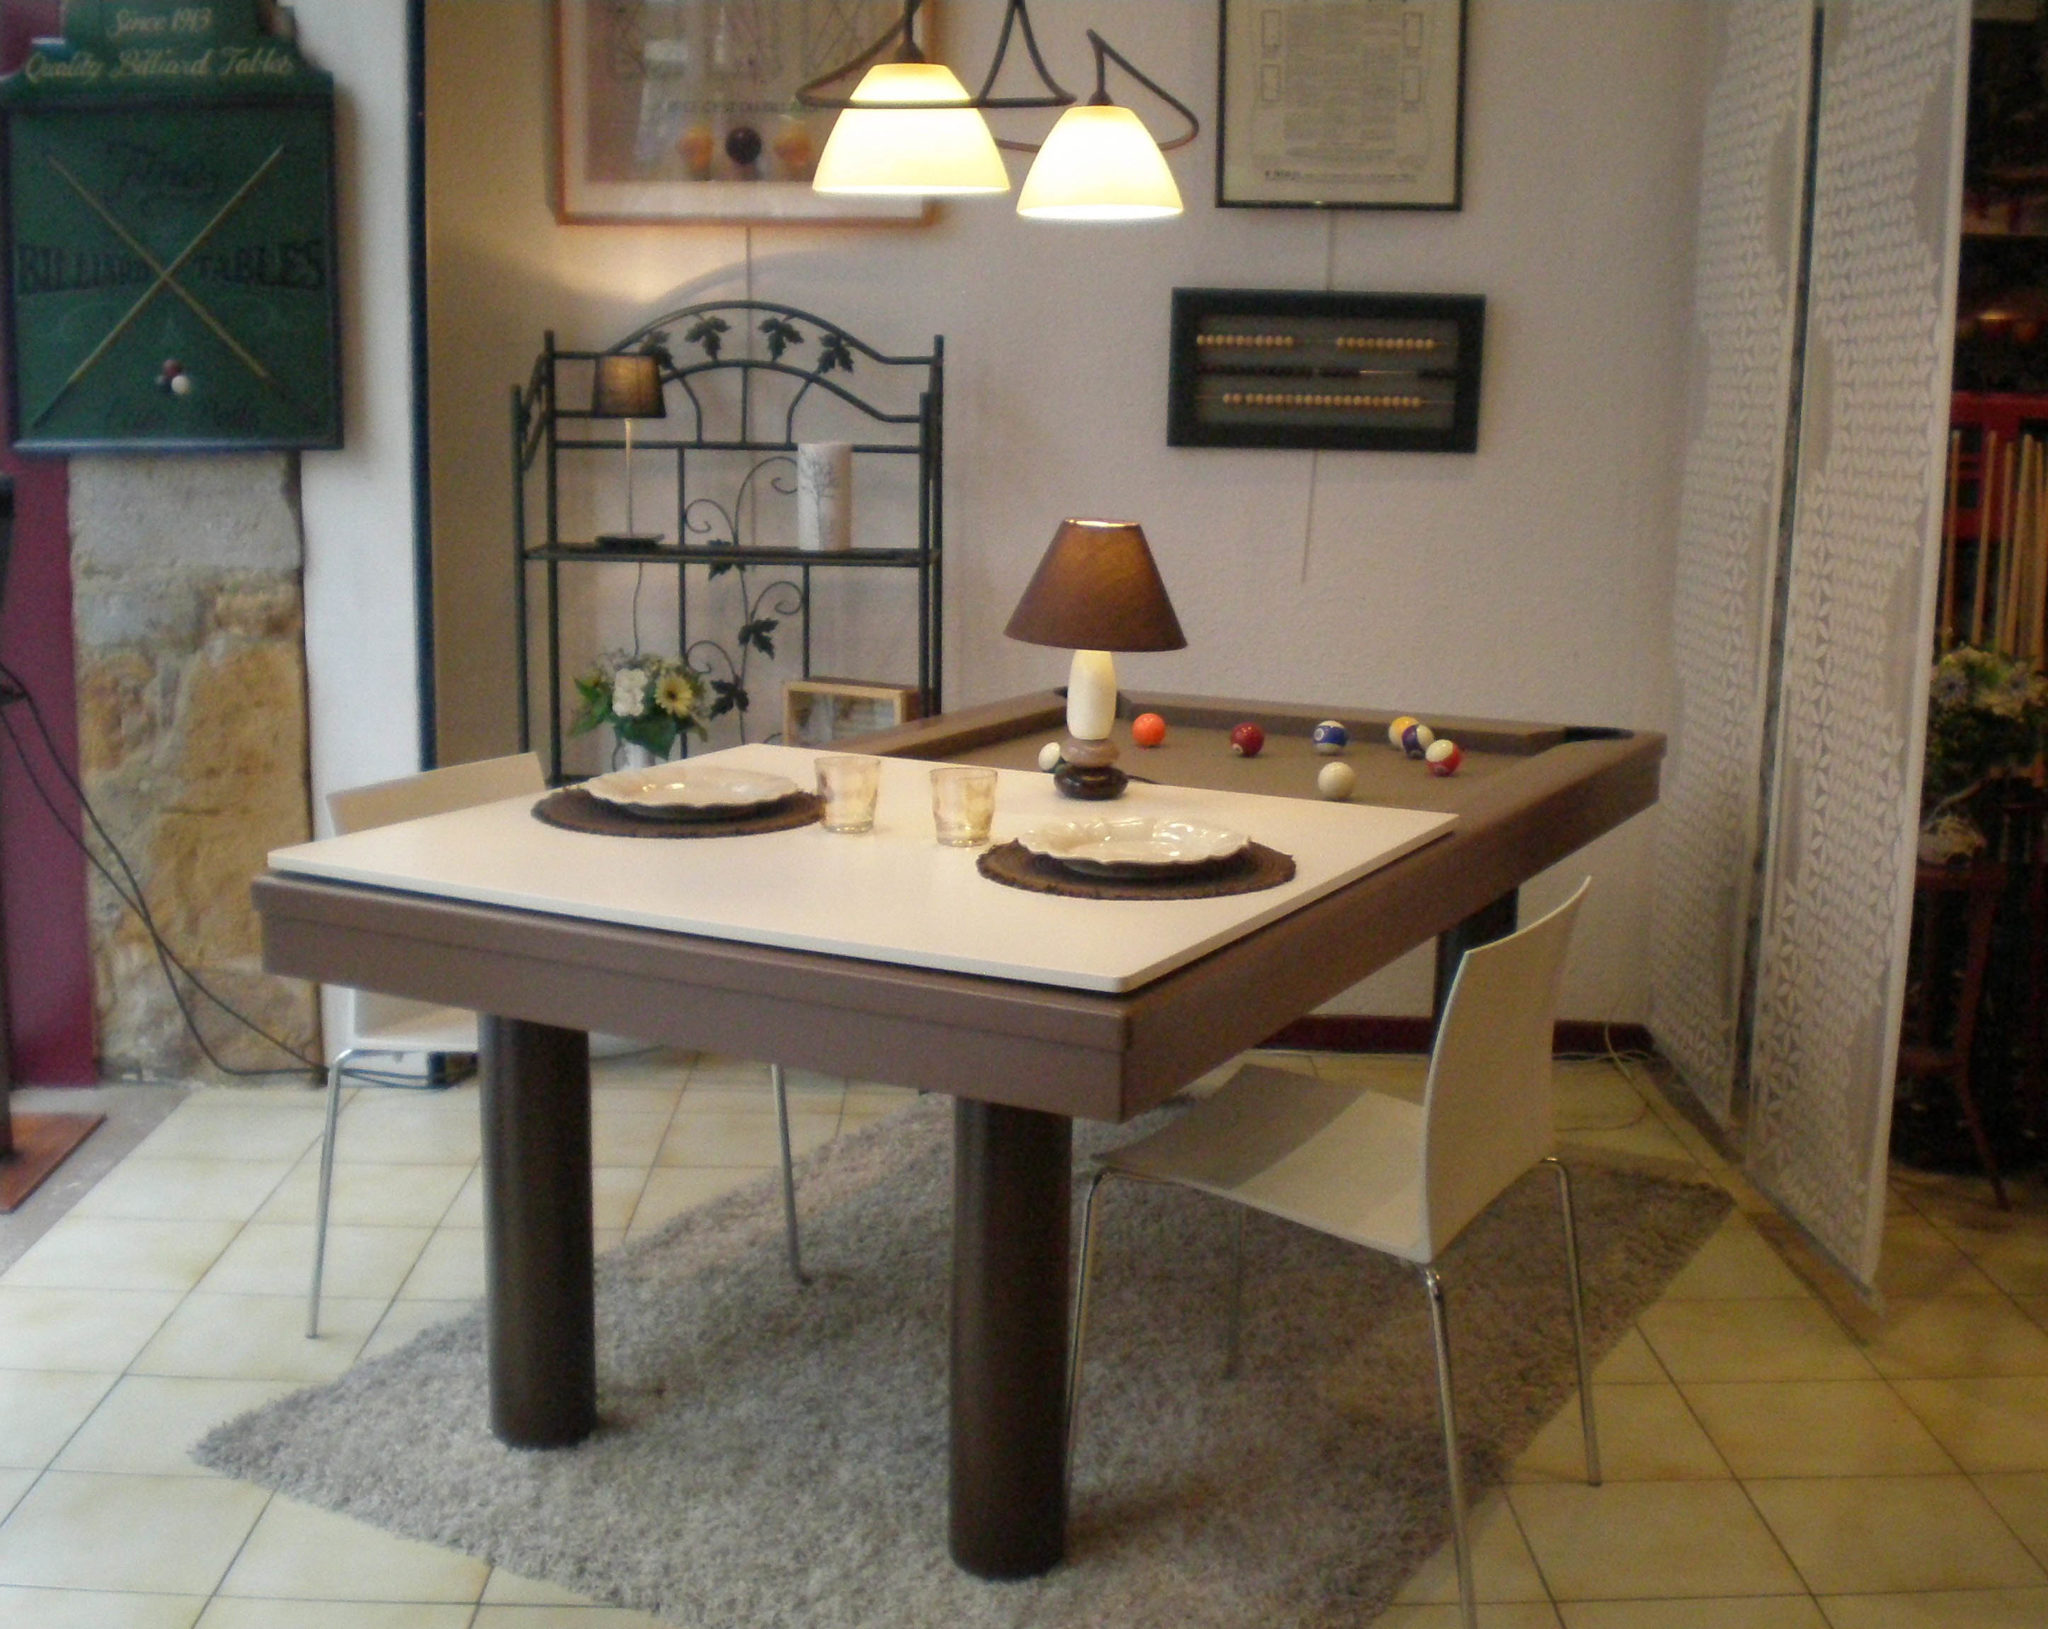 « Le Seventies » table 4 690 €